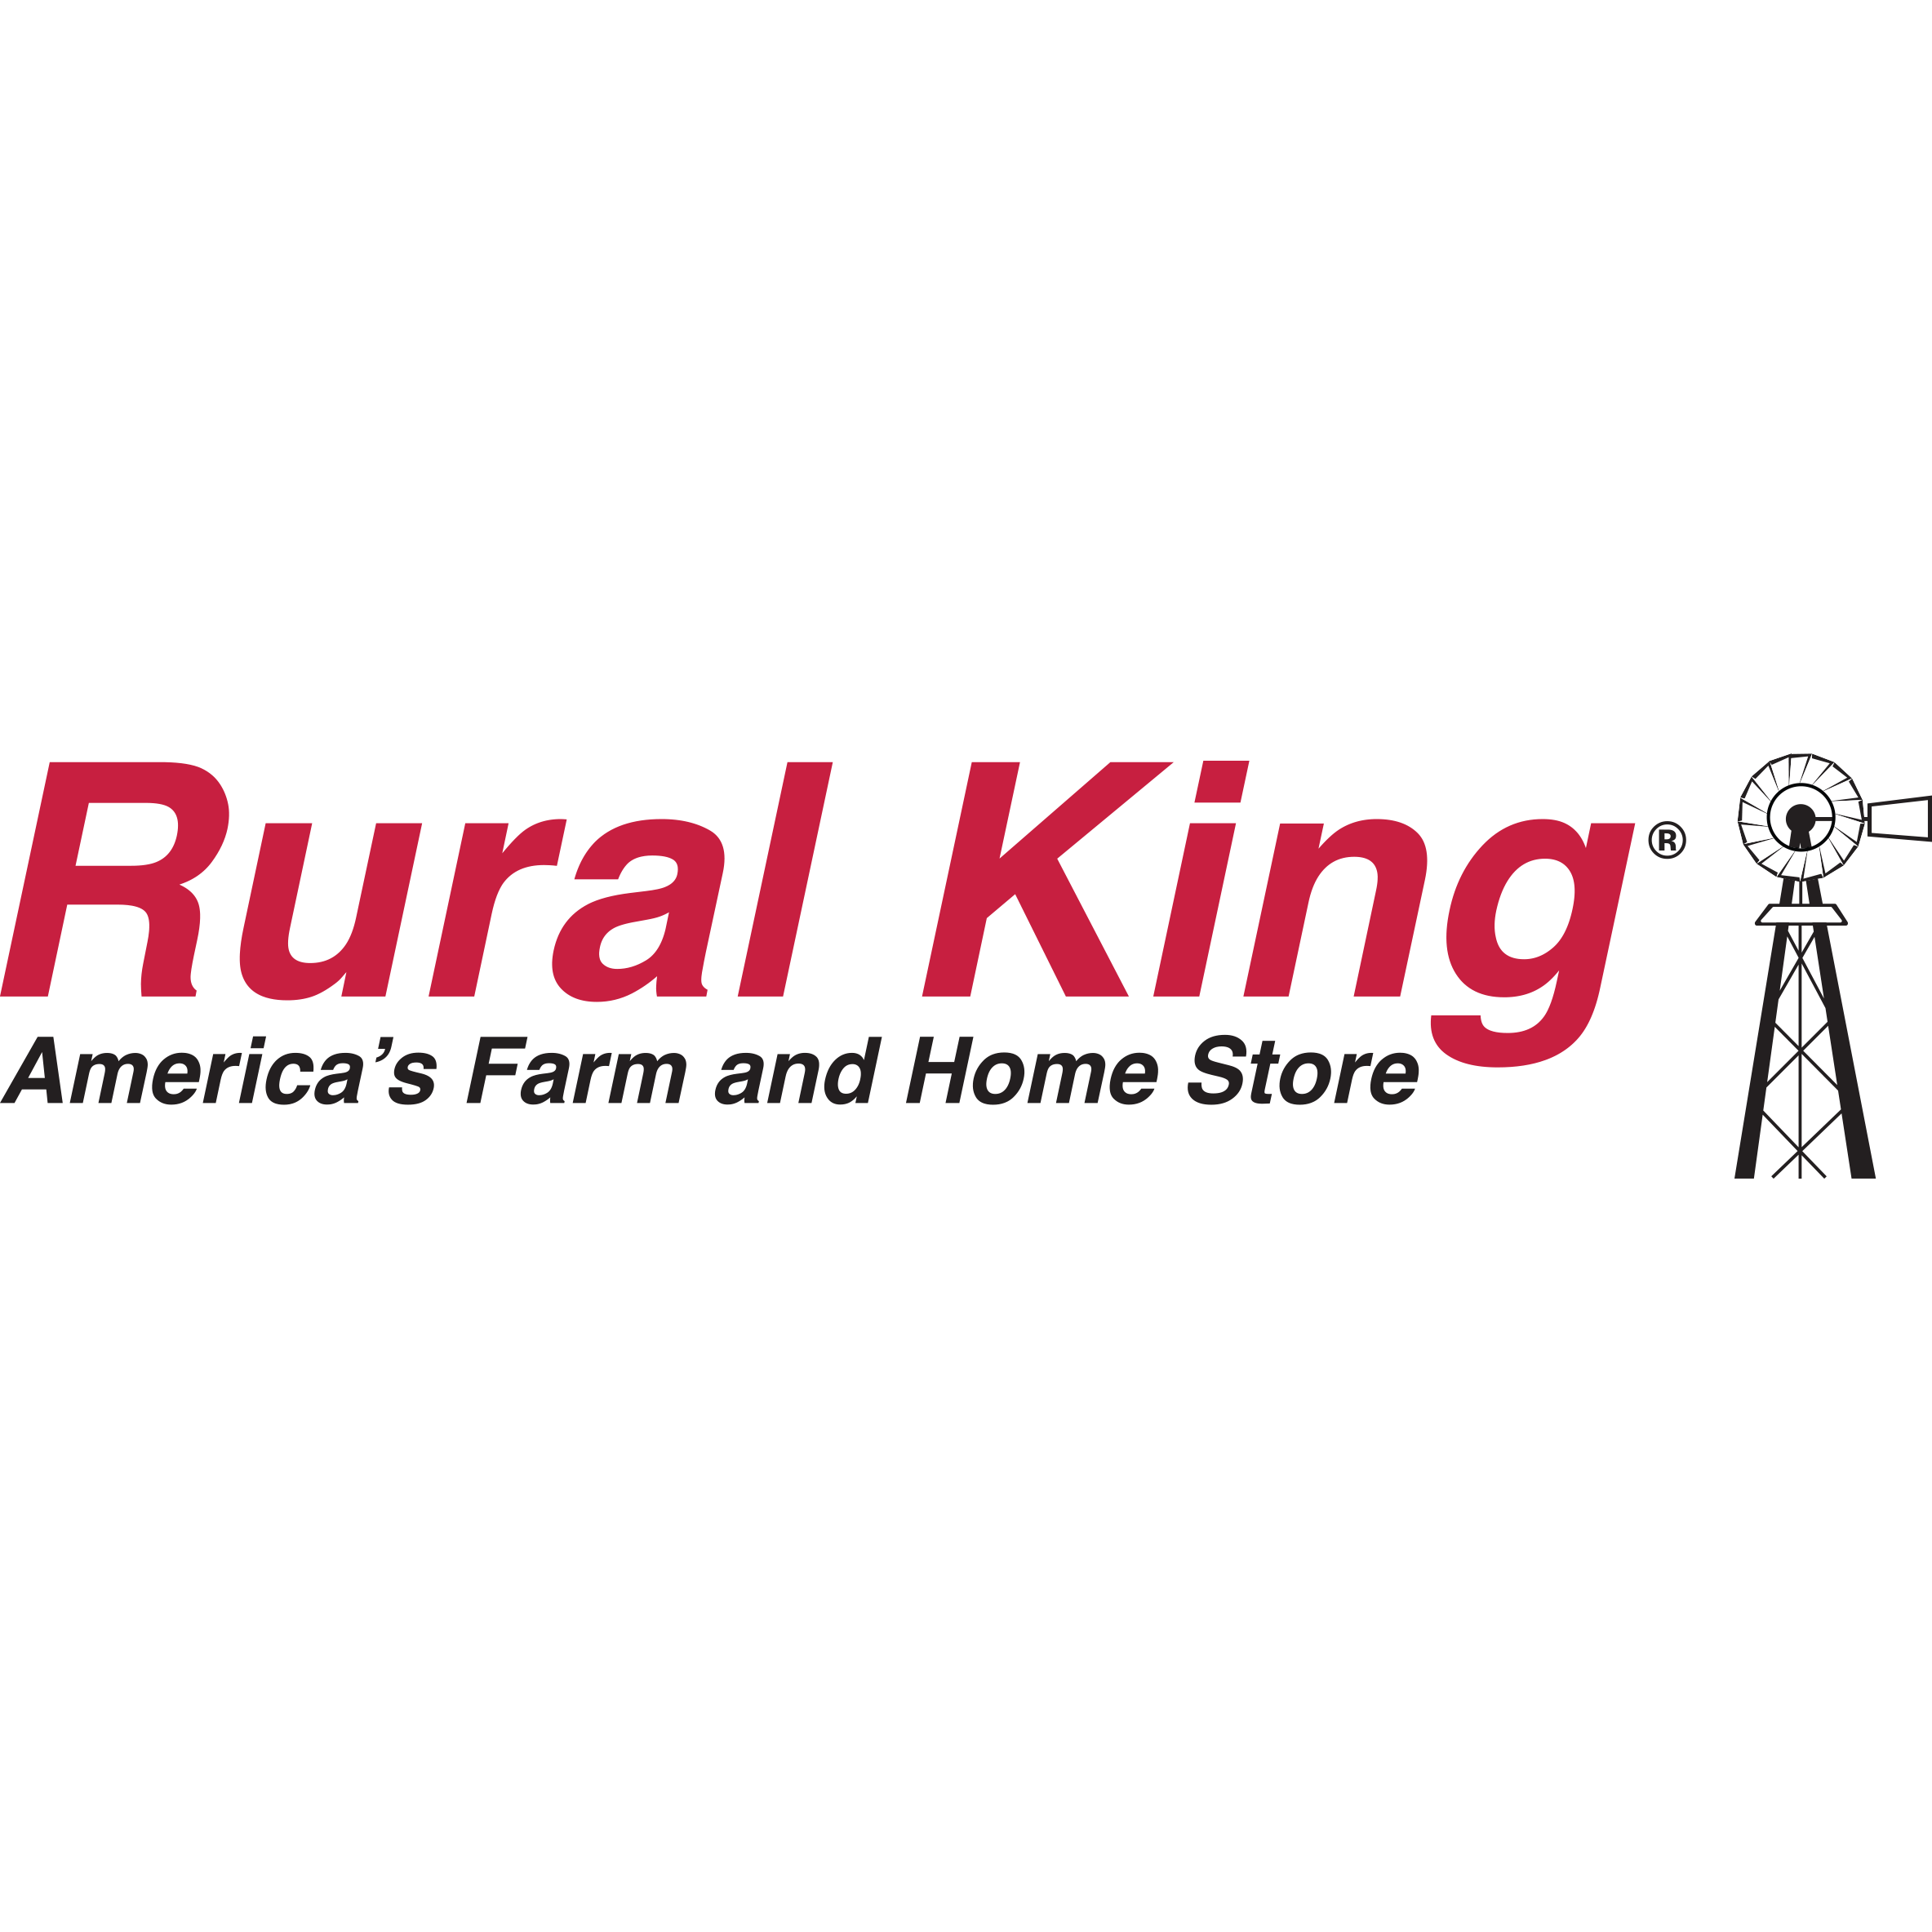 Peach Truck is Coming to Rural King!